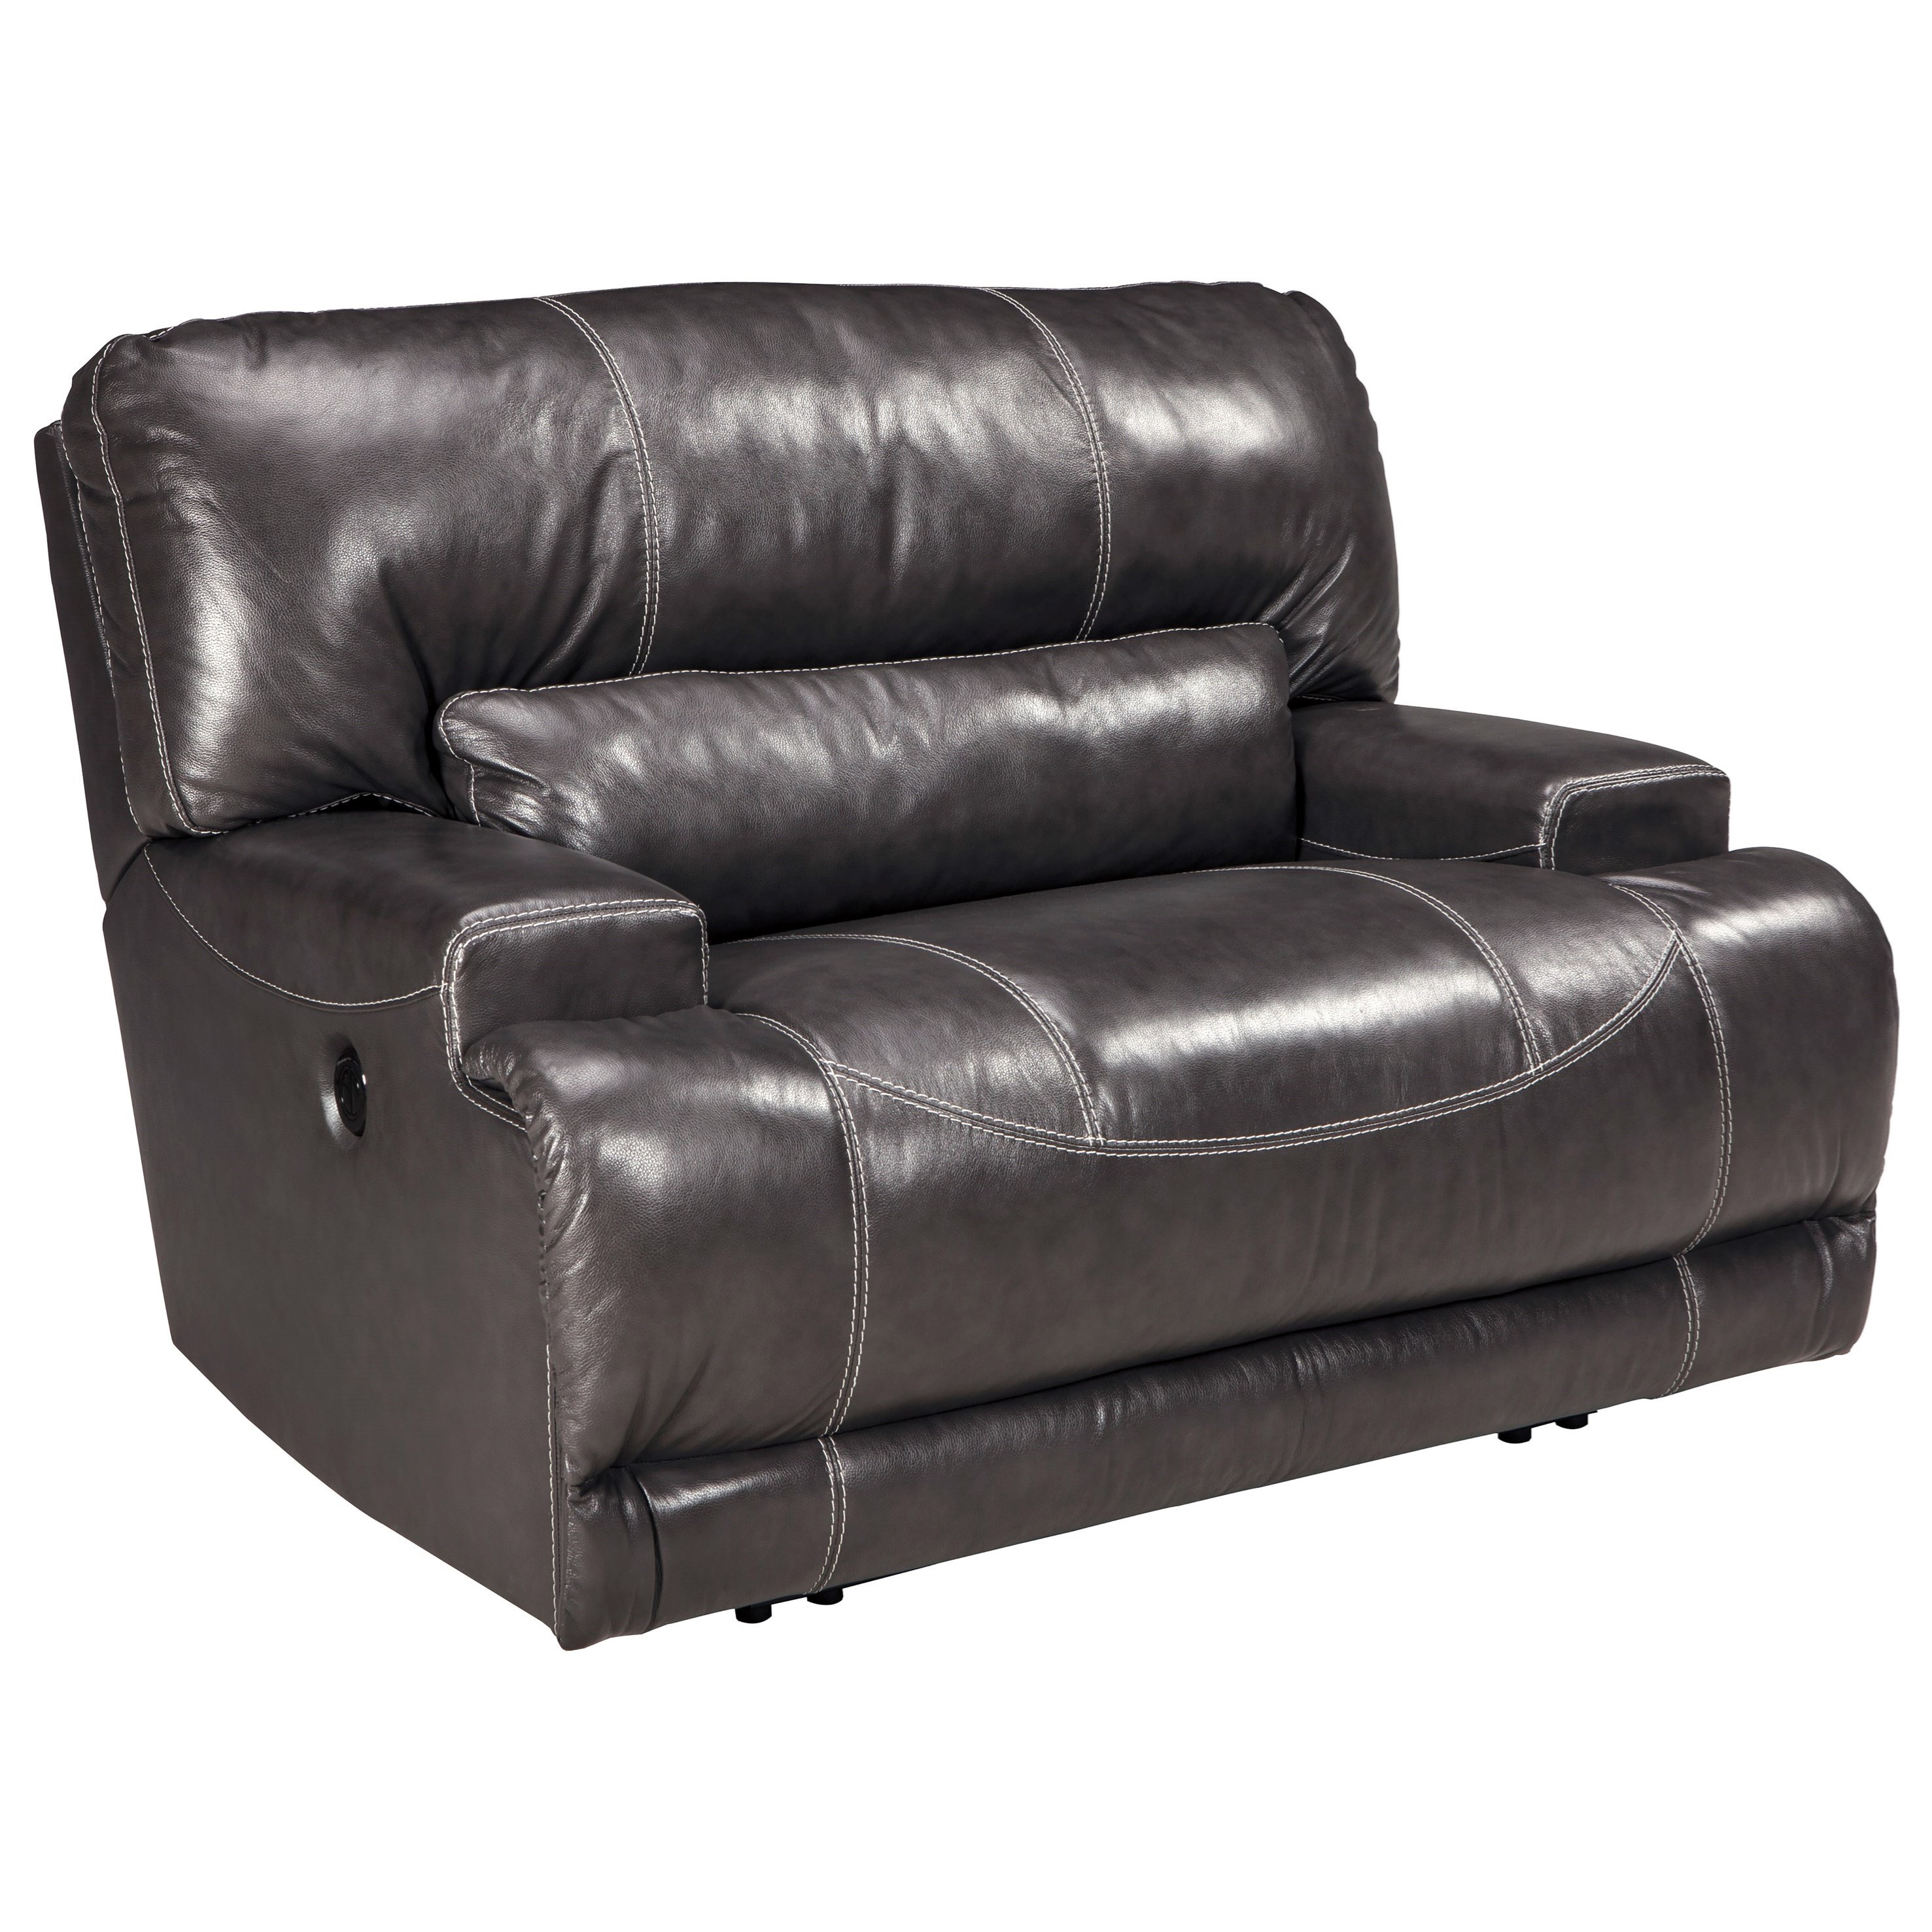 Signature design by ashley mccaskill u6090082 contemporary for Wide couches